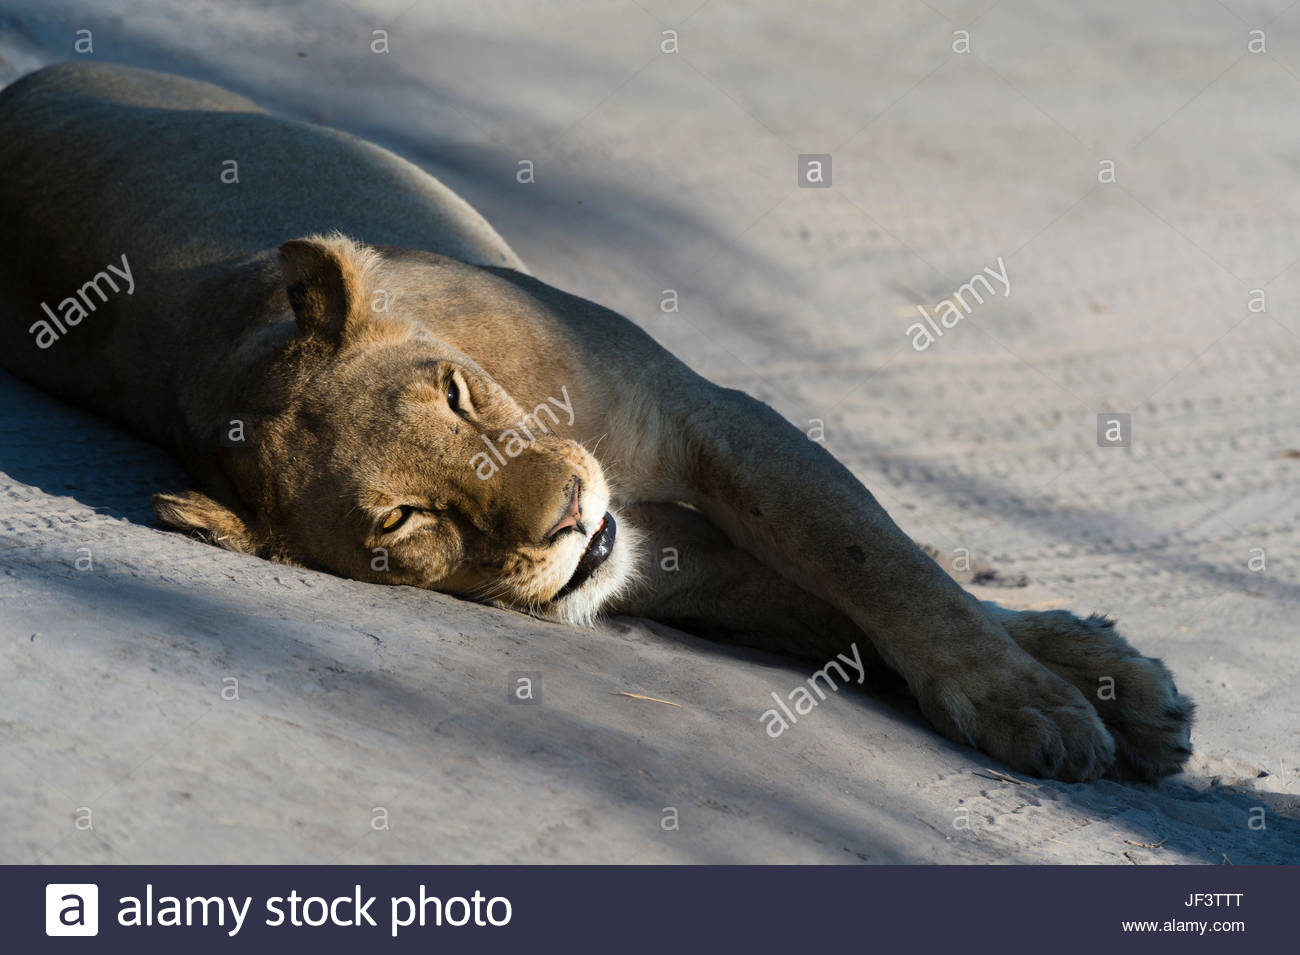 A lioness, Panthera leo, resting on the tracks left by a vehicle. Stock Photo